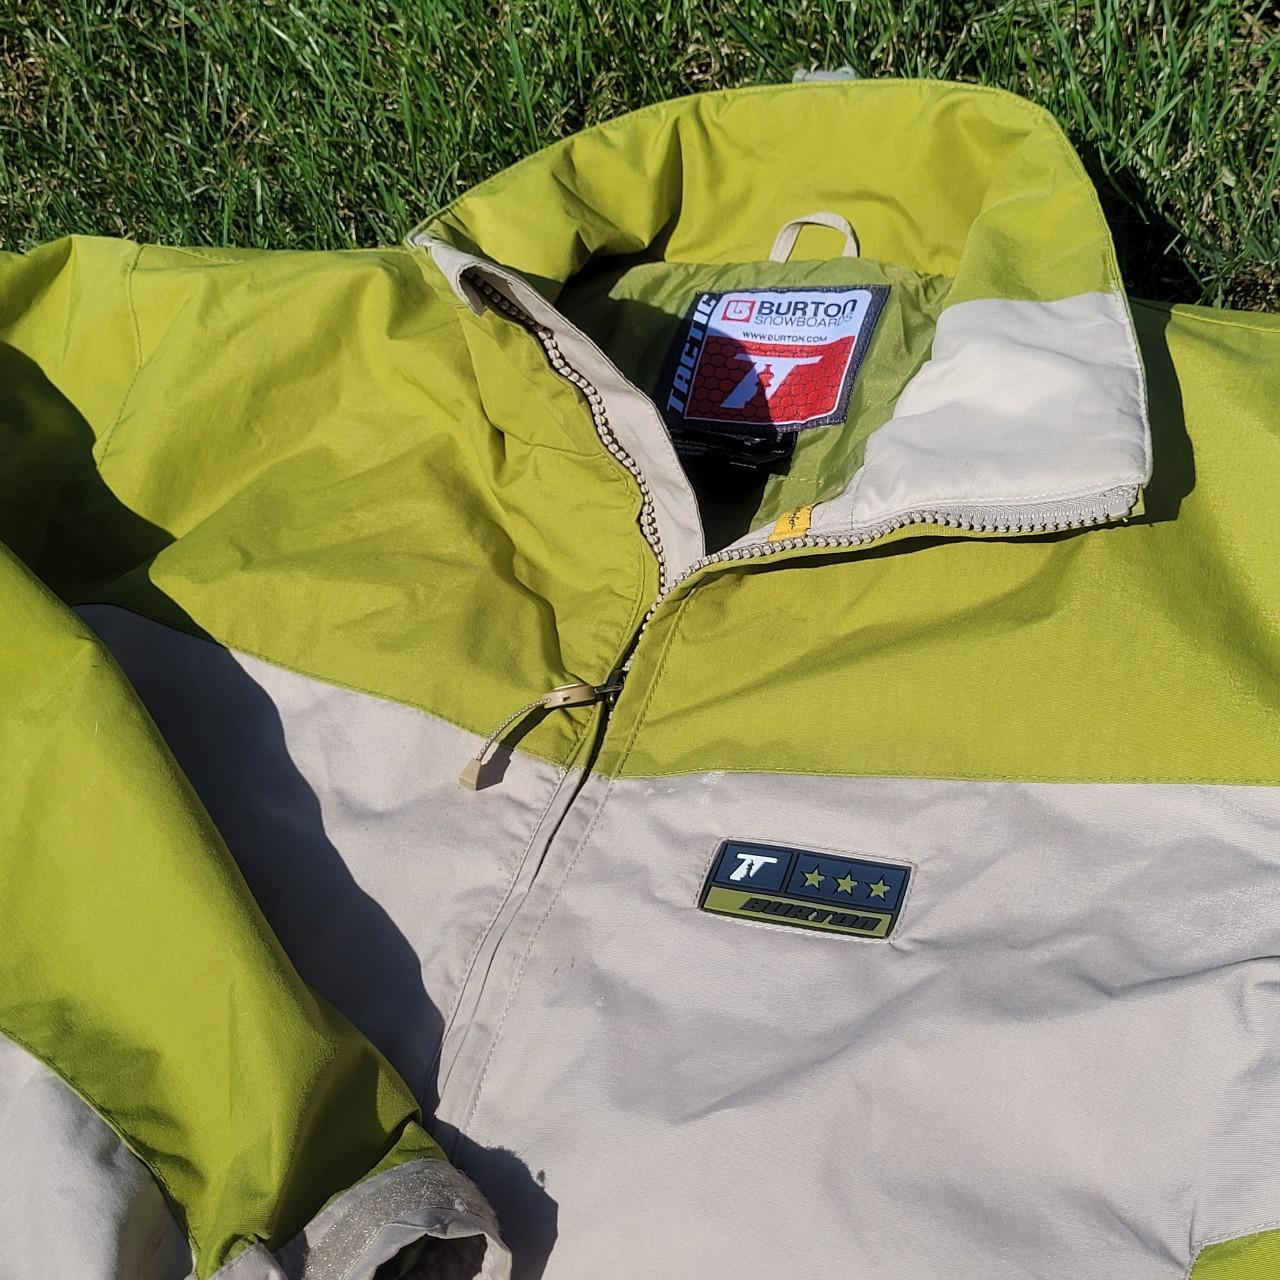 Product Image 1 - Burton Snowboarding Jacket Size Small  Excellent